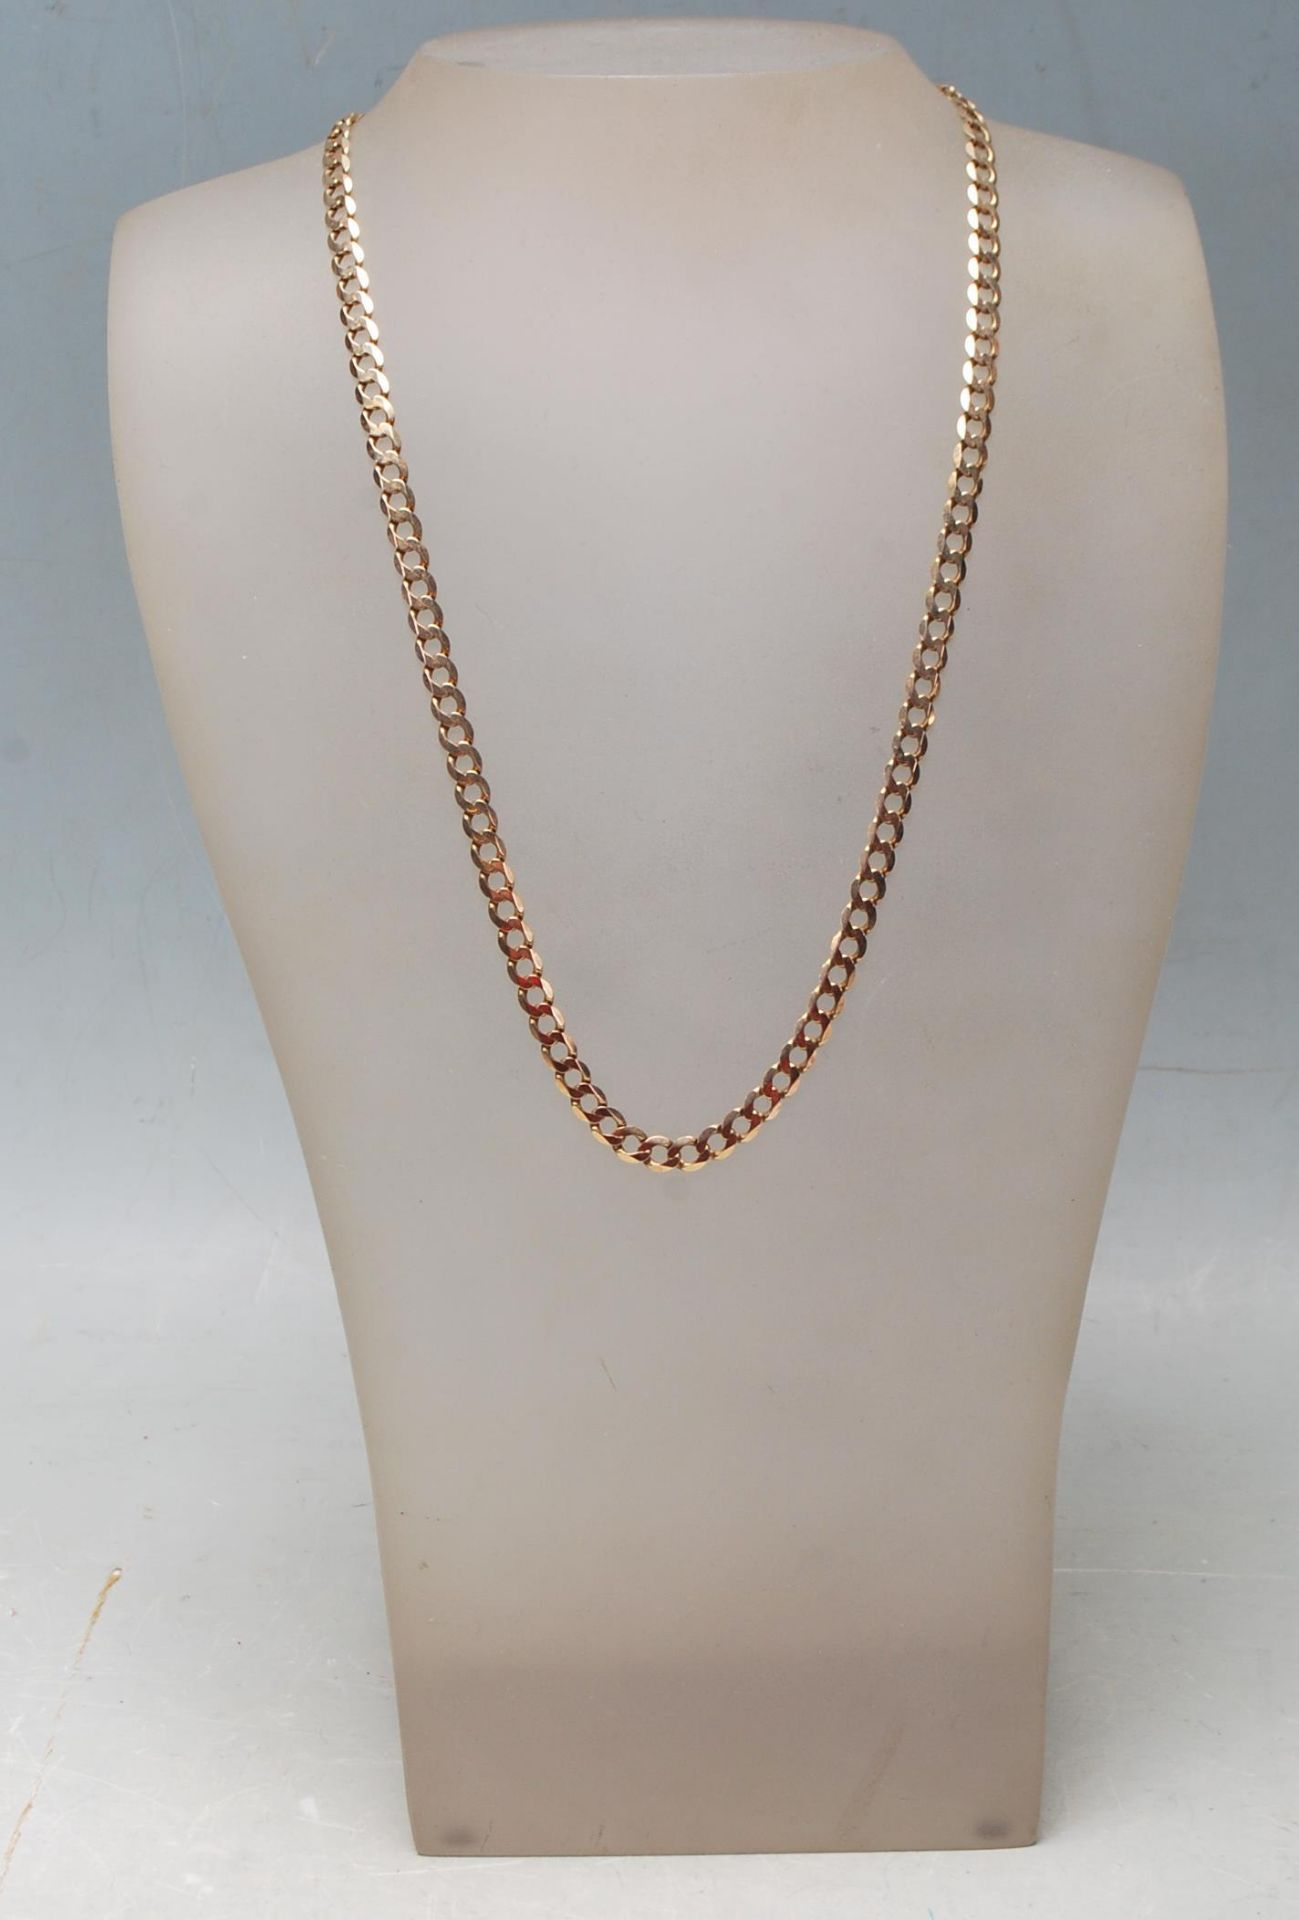 9CT GOLD FLAT LINK NECKLACE CHAIN - Image 7 of 7